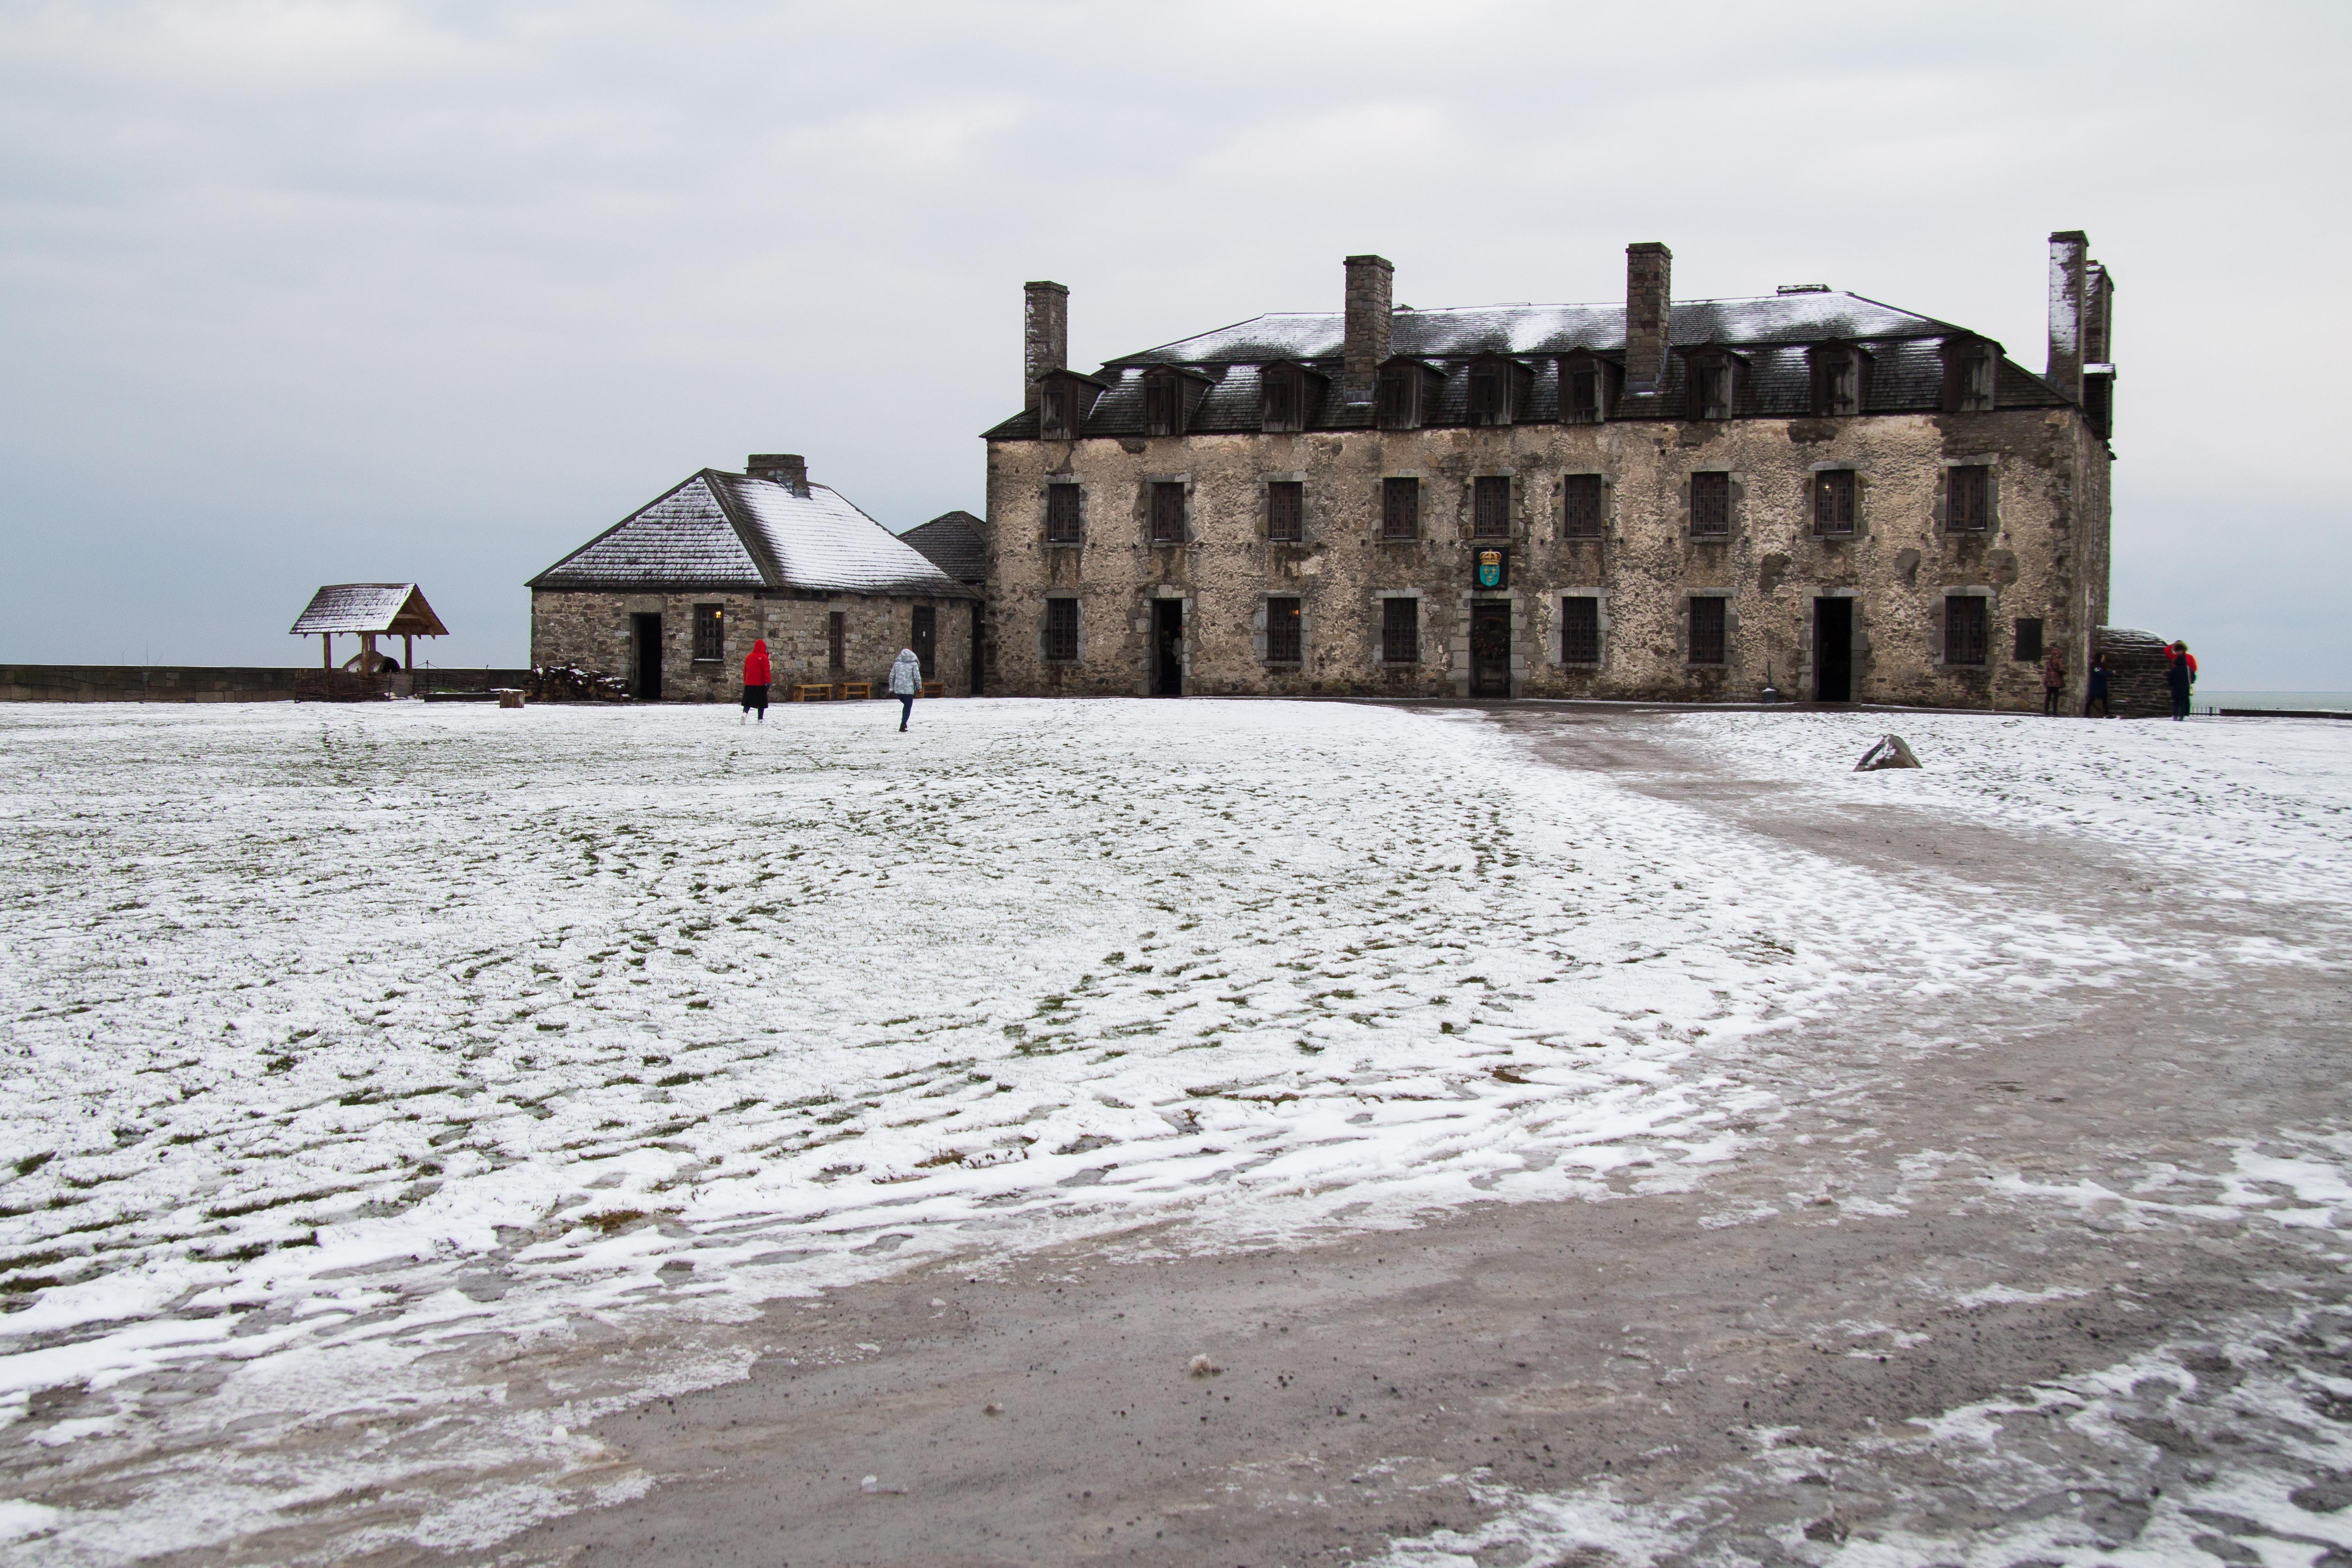 Touring Niagara, Part 2: French Castle – Lost in the Lens